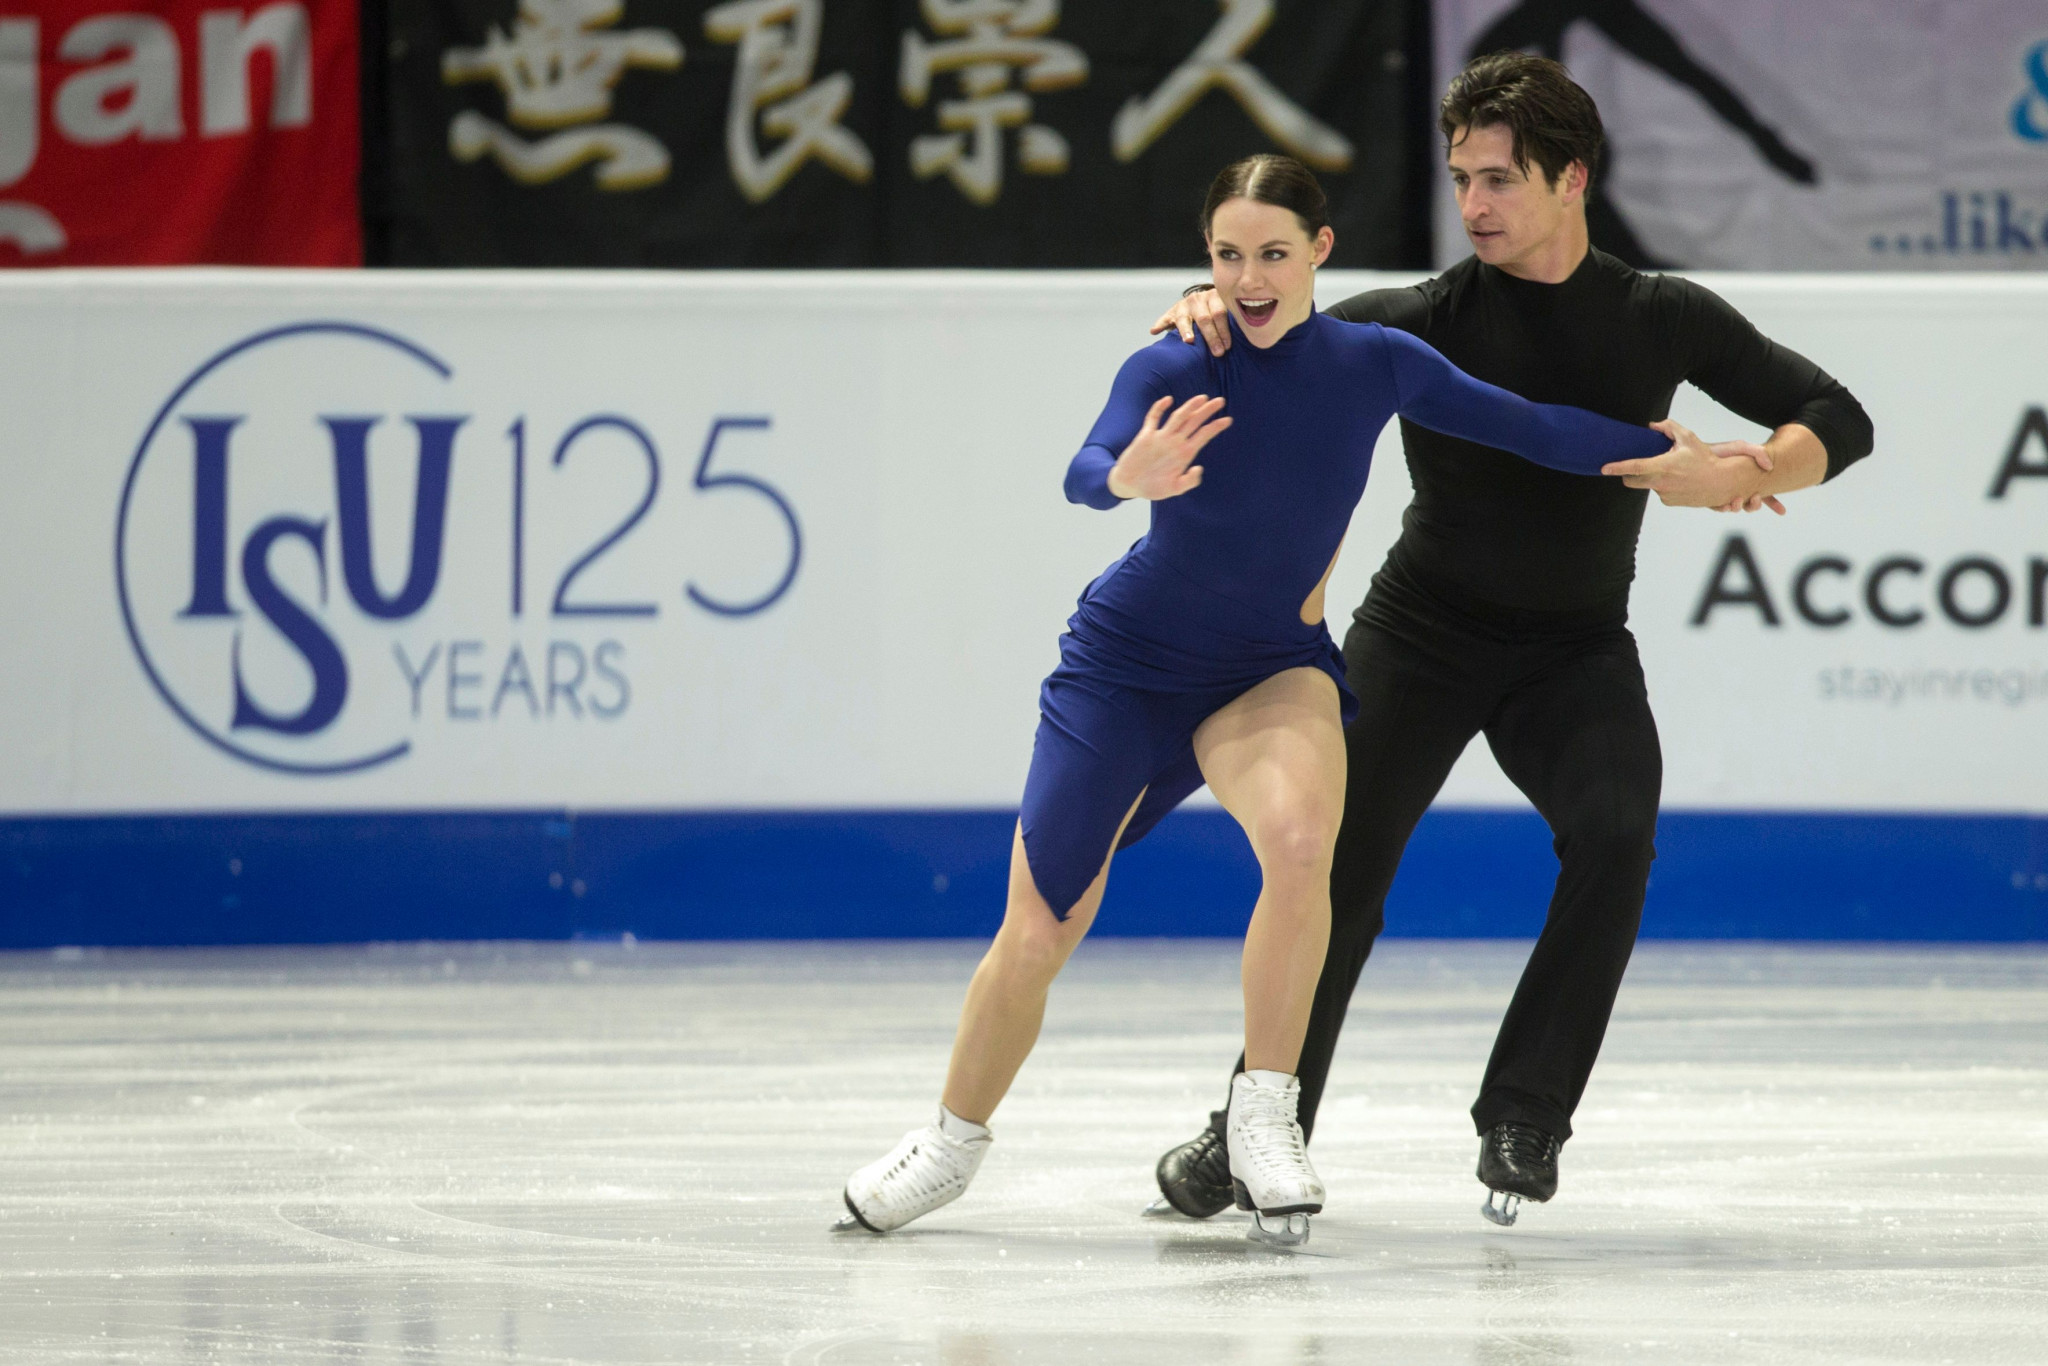 World champions Virtue and Moir head star-studded field with ISU Grand Prix of Figure Skating series set to continue in Canada